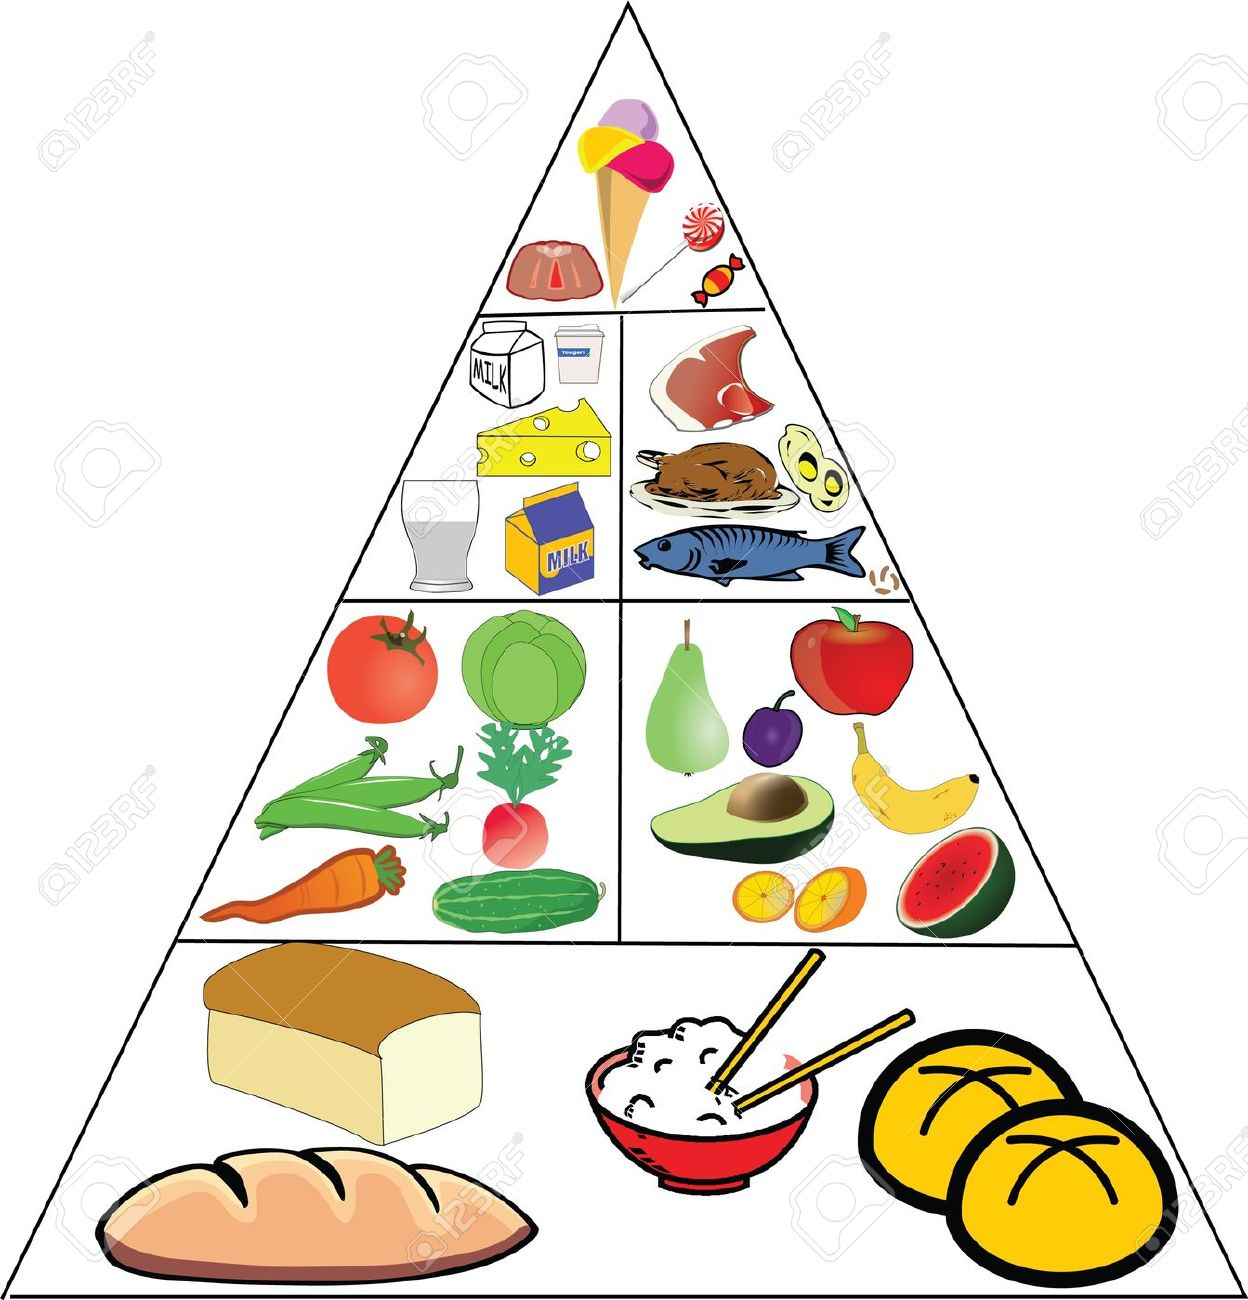 Images: Nutrition Pyramid Clipart.